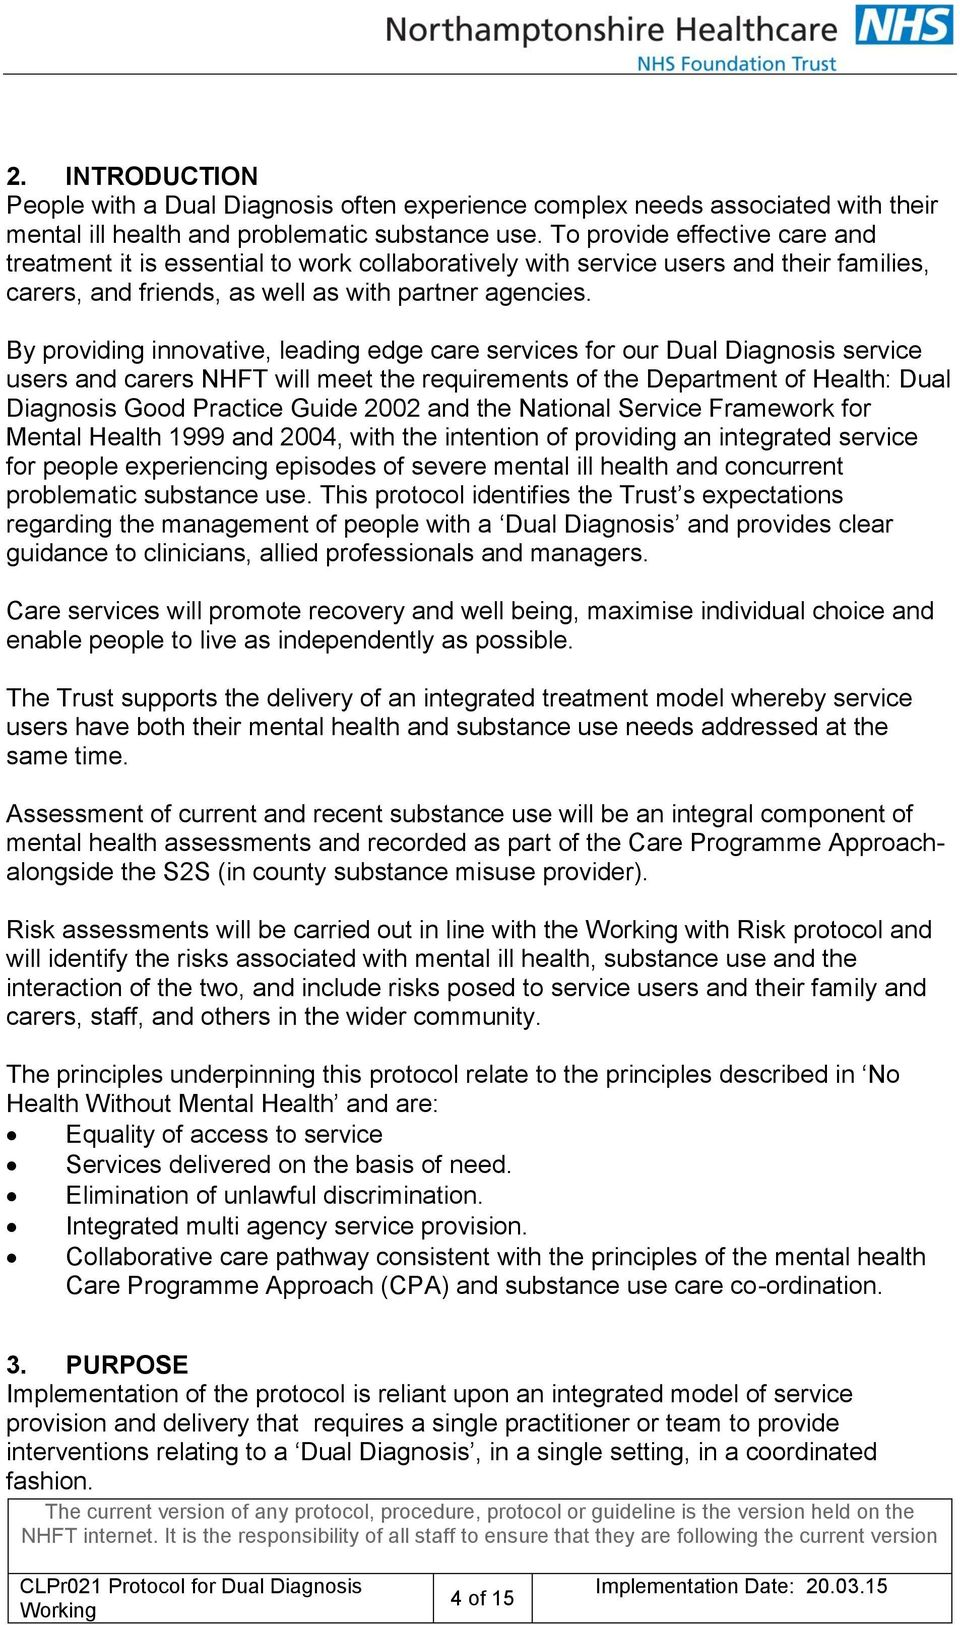 By providing innovative, leading edge care services for our Dual Diagnosis service users and carers NHFT will meet the requirements of the Department of Health: Dual Diagnosis Good Practice Guide